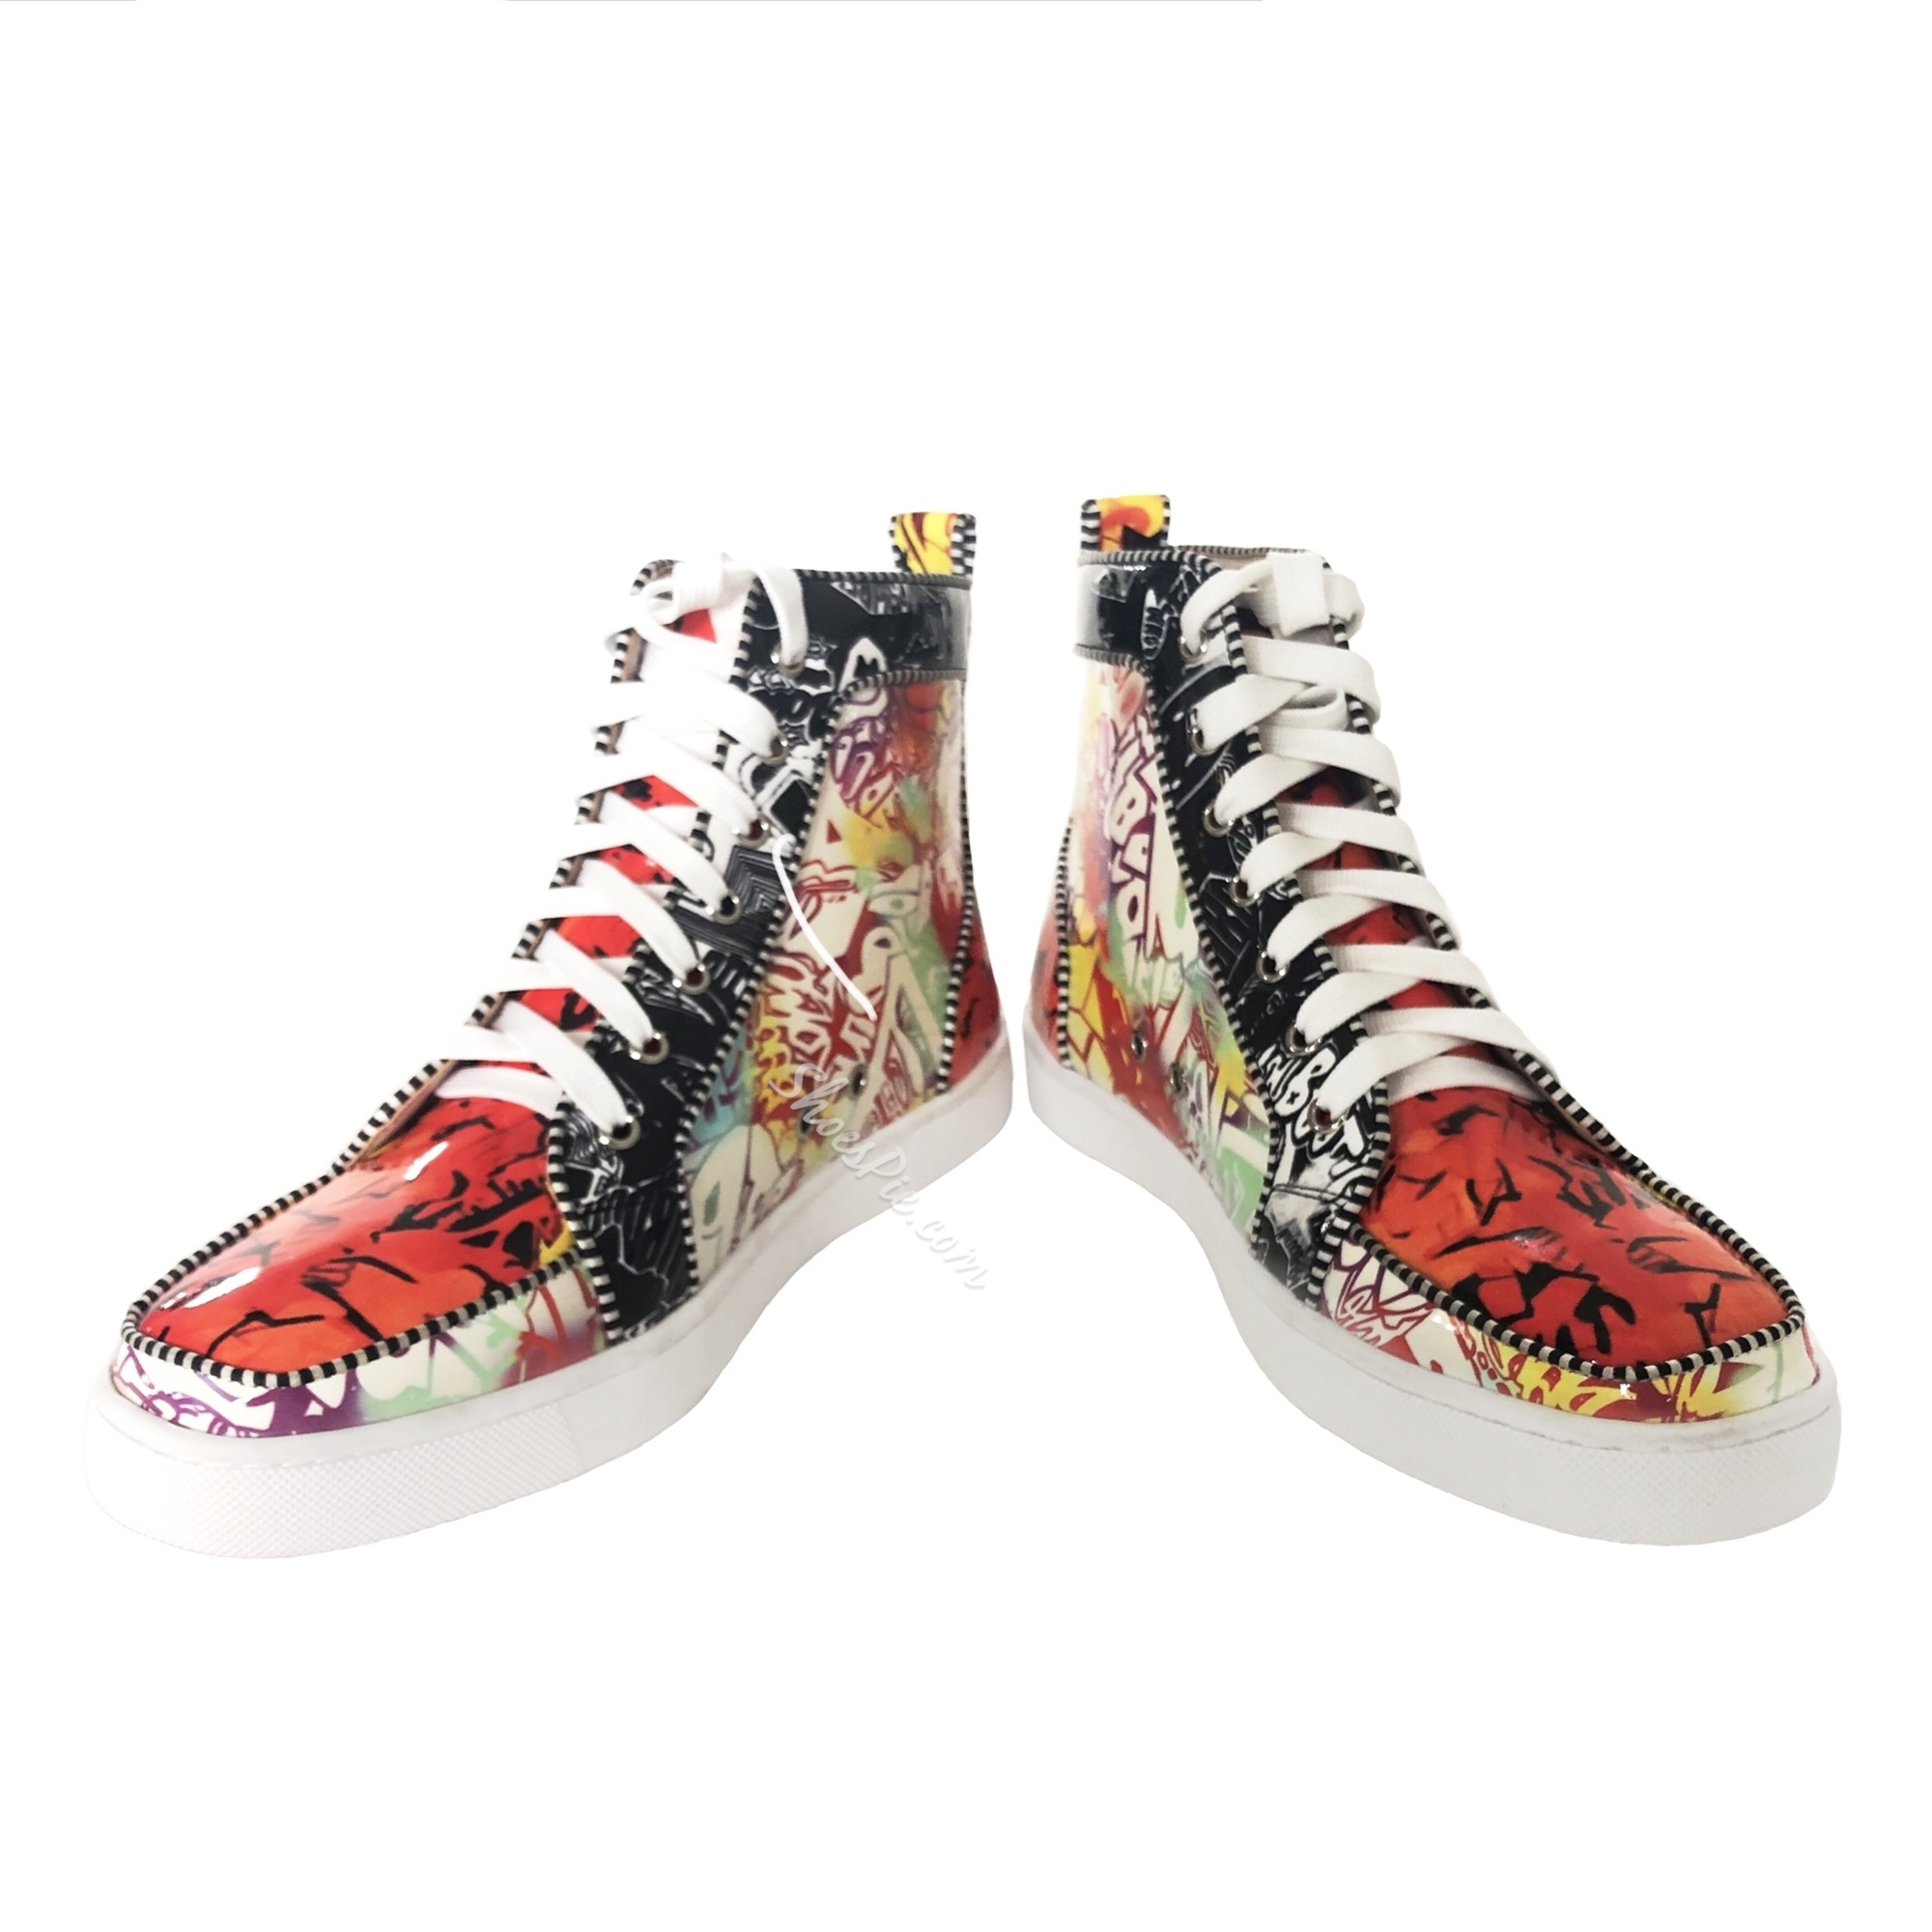 Shoespie Flat High Cut Upper Lace-Up Round Toe Men's Sneakers